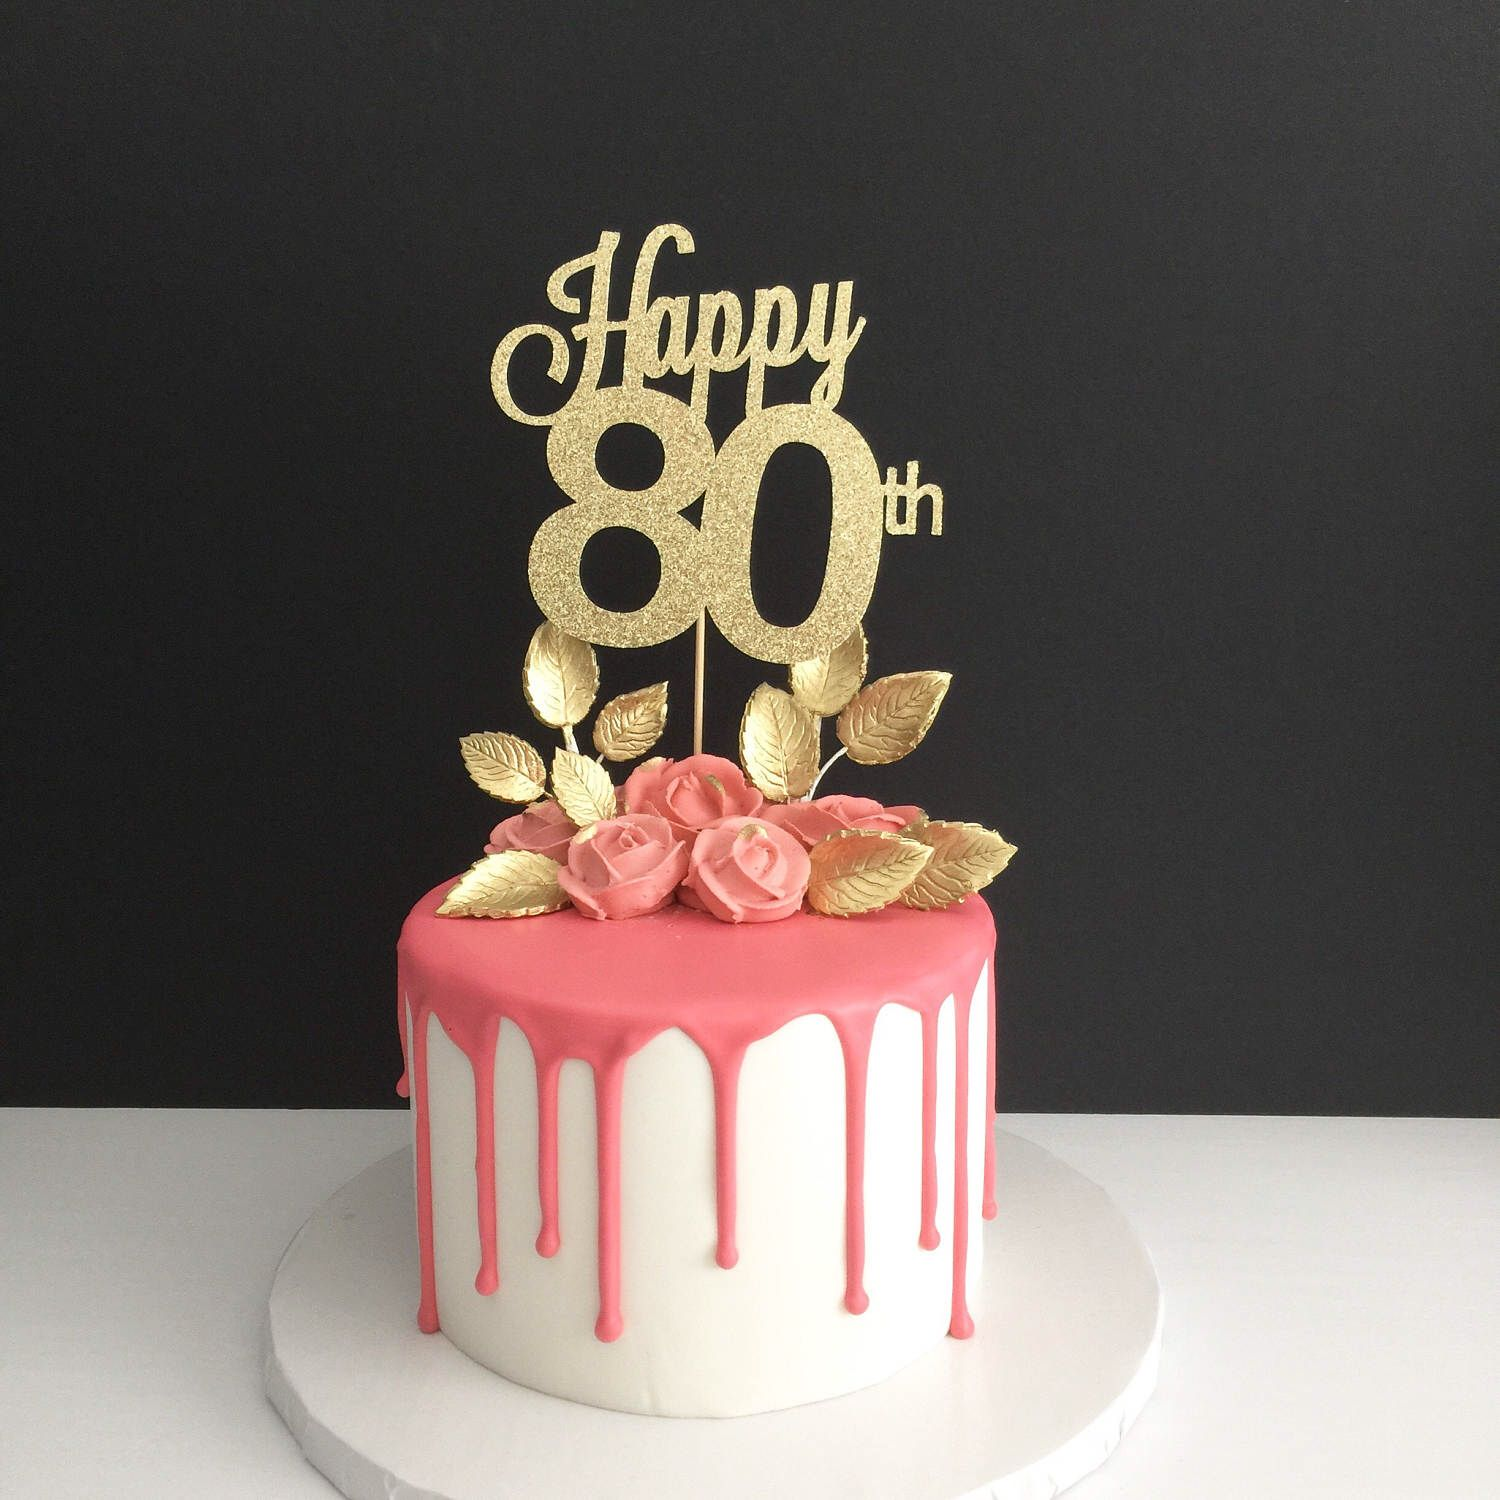 Any age 80th birthday cake topper happy 80th cake topper for Gardening 80th birthday cake